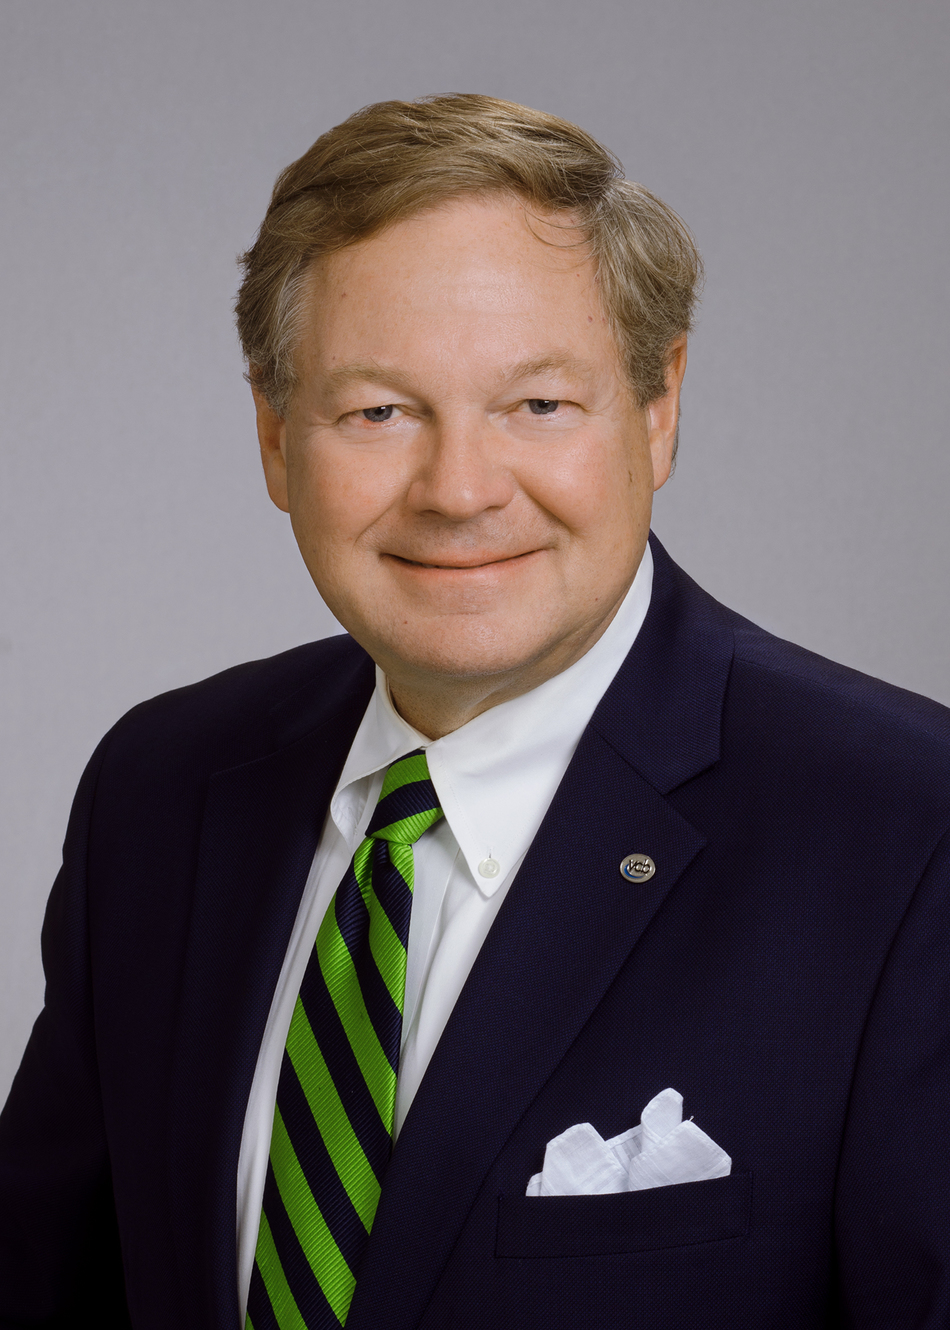 Eric F. Nost, President of Bay Trust Company & Wealth Management Group. (PRNewsfoto/Bay Banks of Virginia, Inc.)